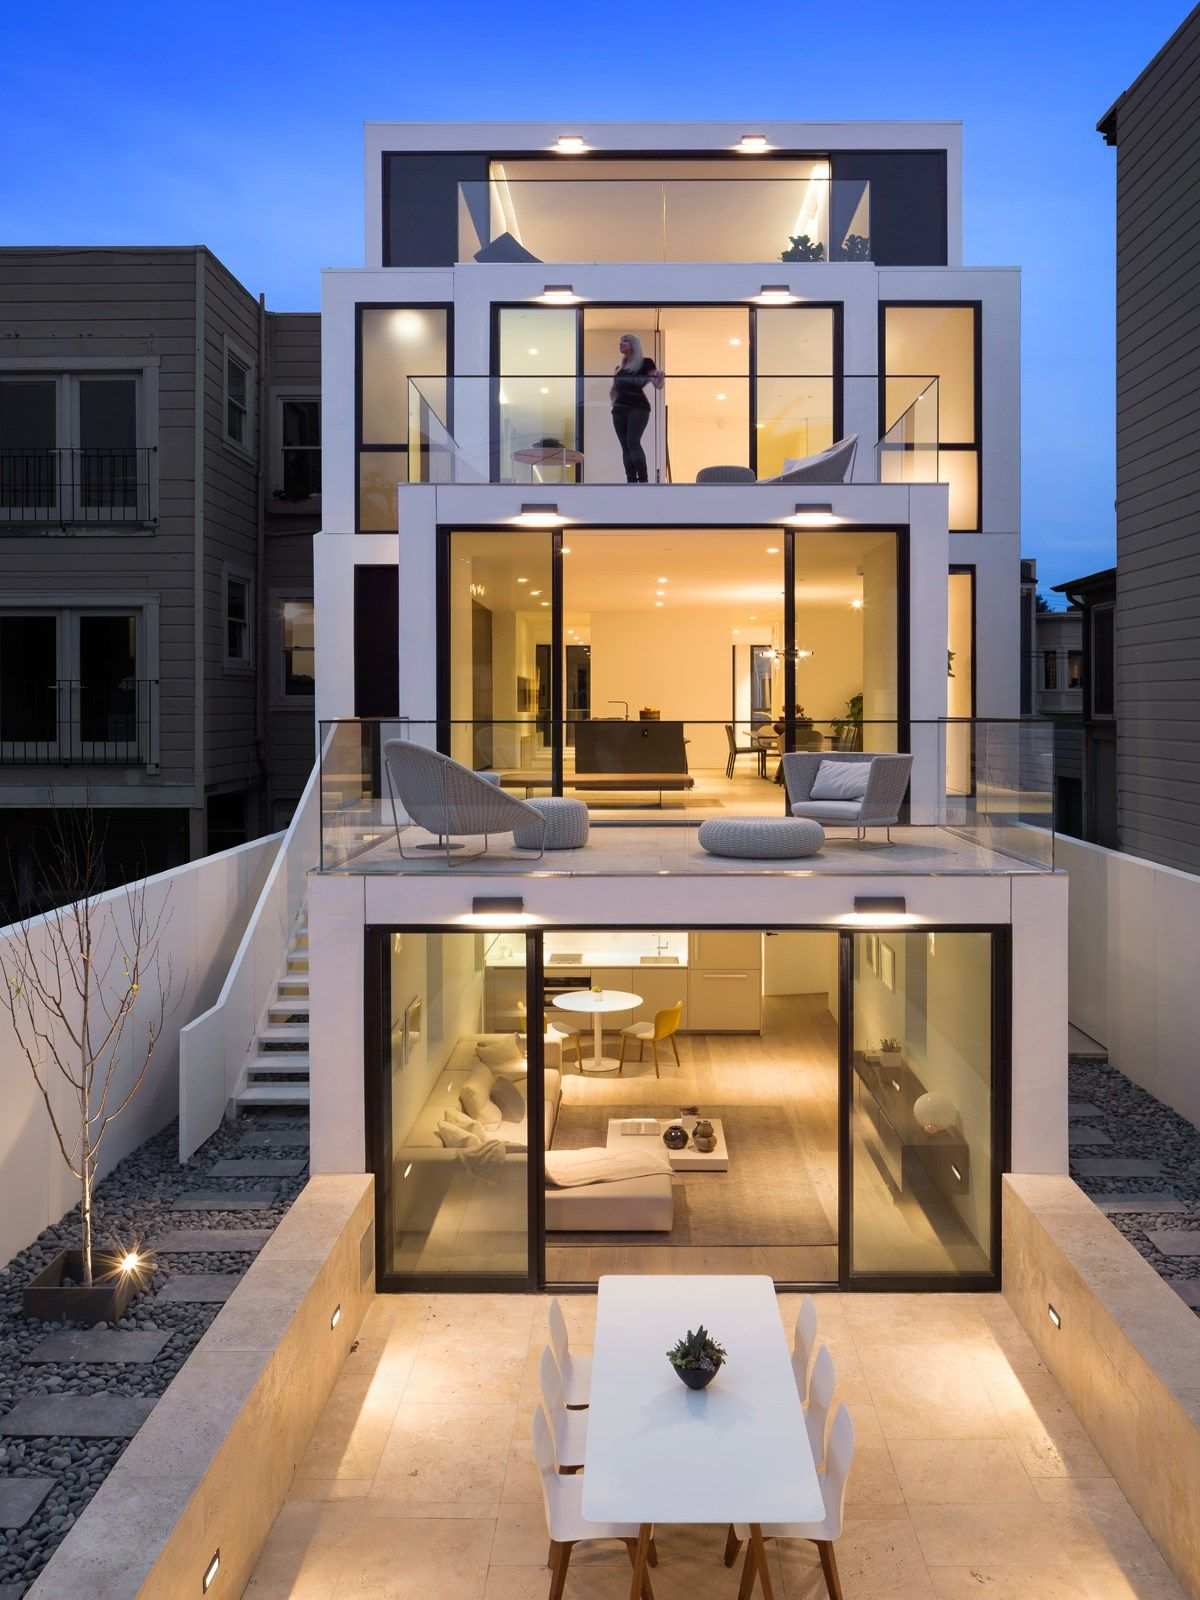 Modern Architecture San Francisco 50 oakwood st san francisco, ca, 94110 - san francisco luxury